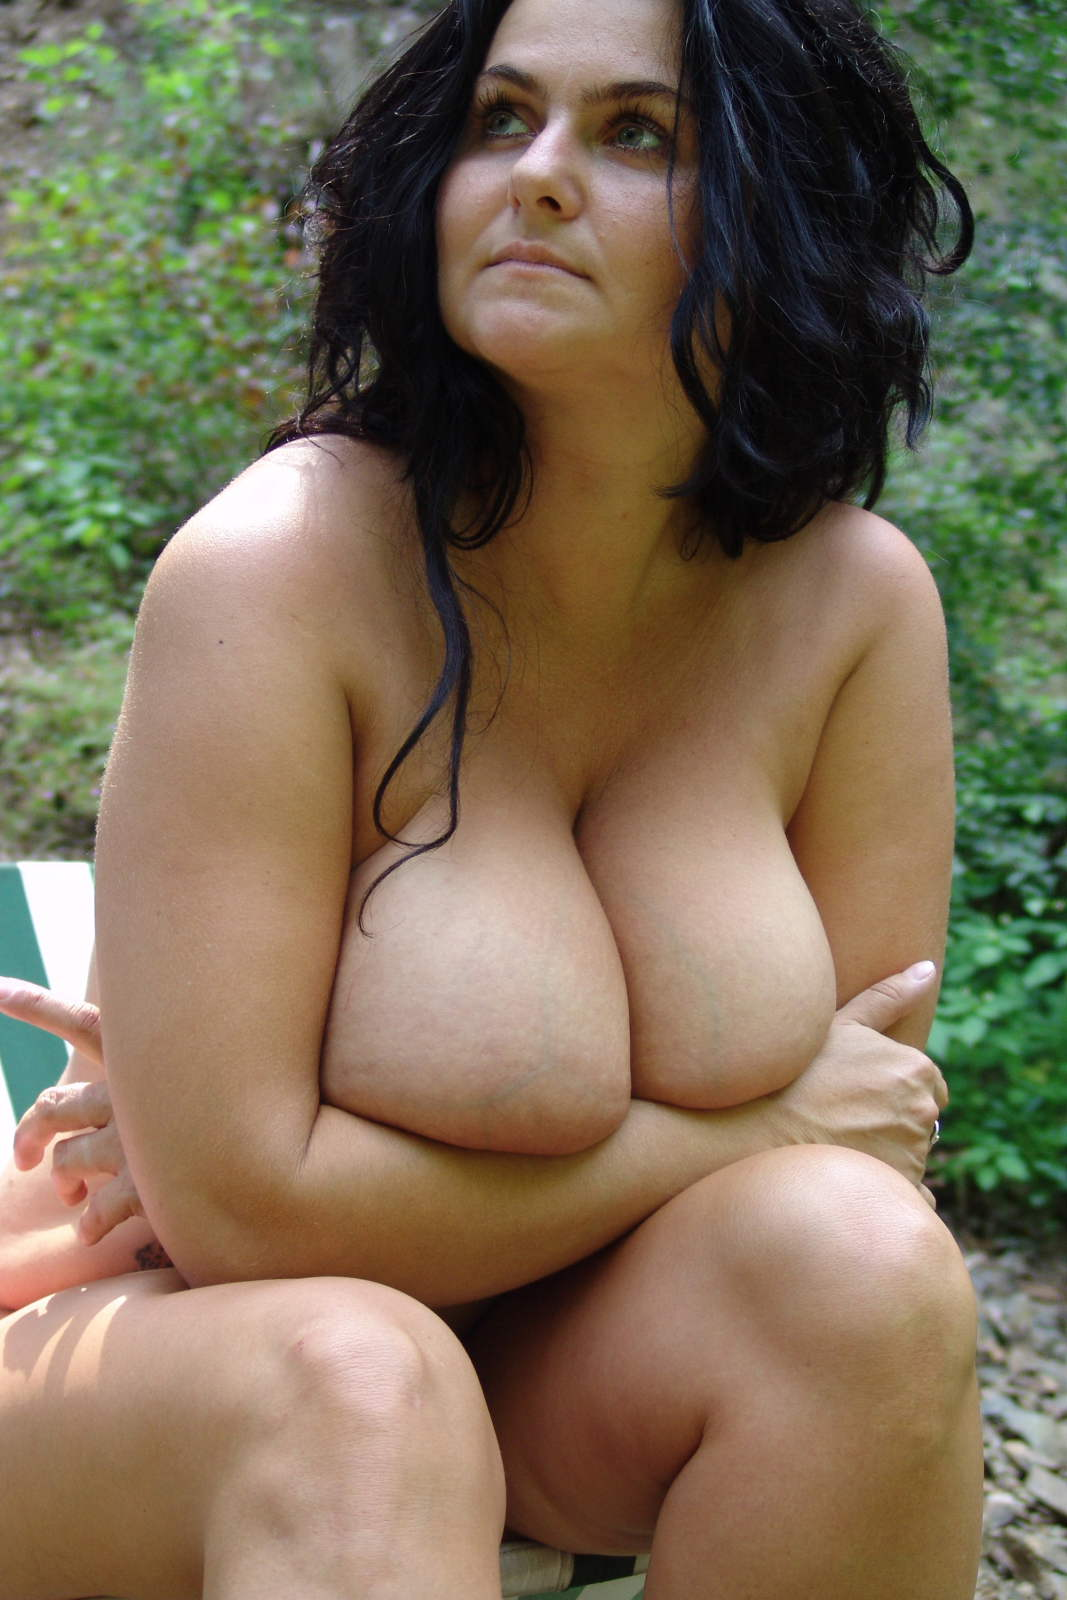 Milf busty reny shows her gigantic boobs at the camera 6